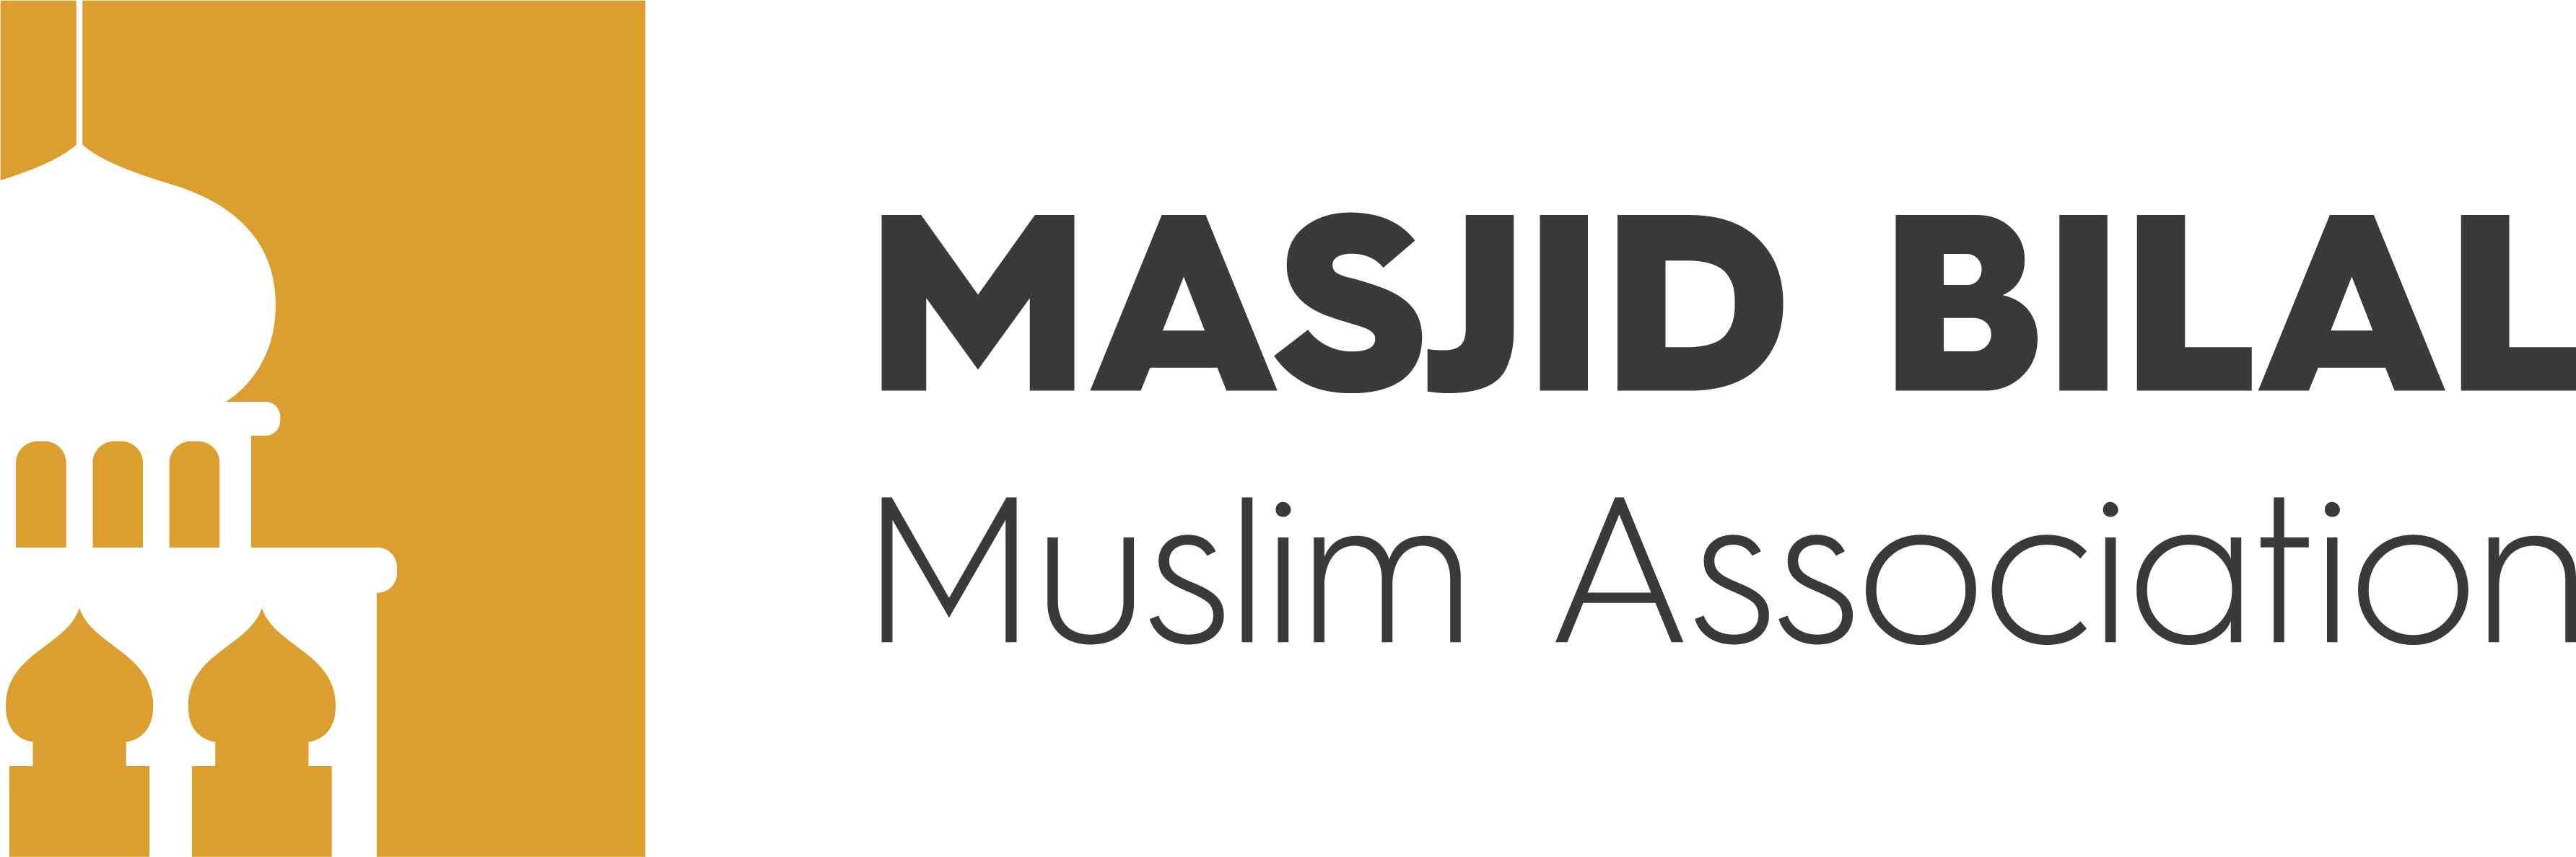 Masjid Bilal Muslim Association